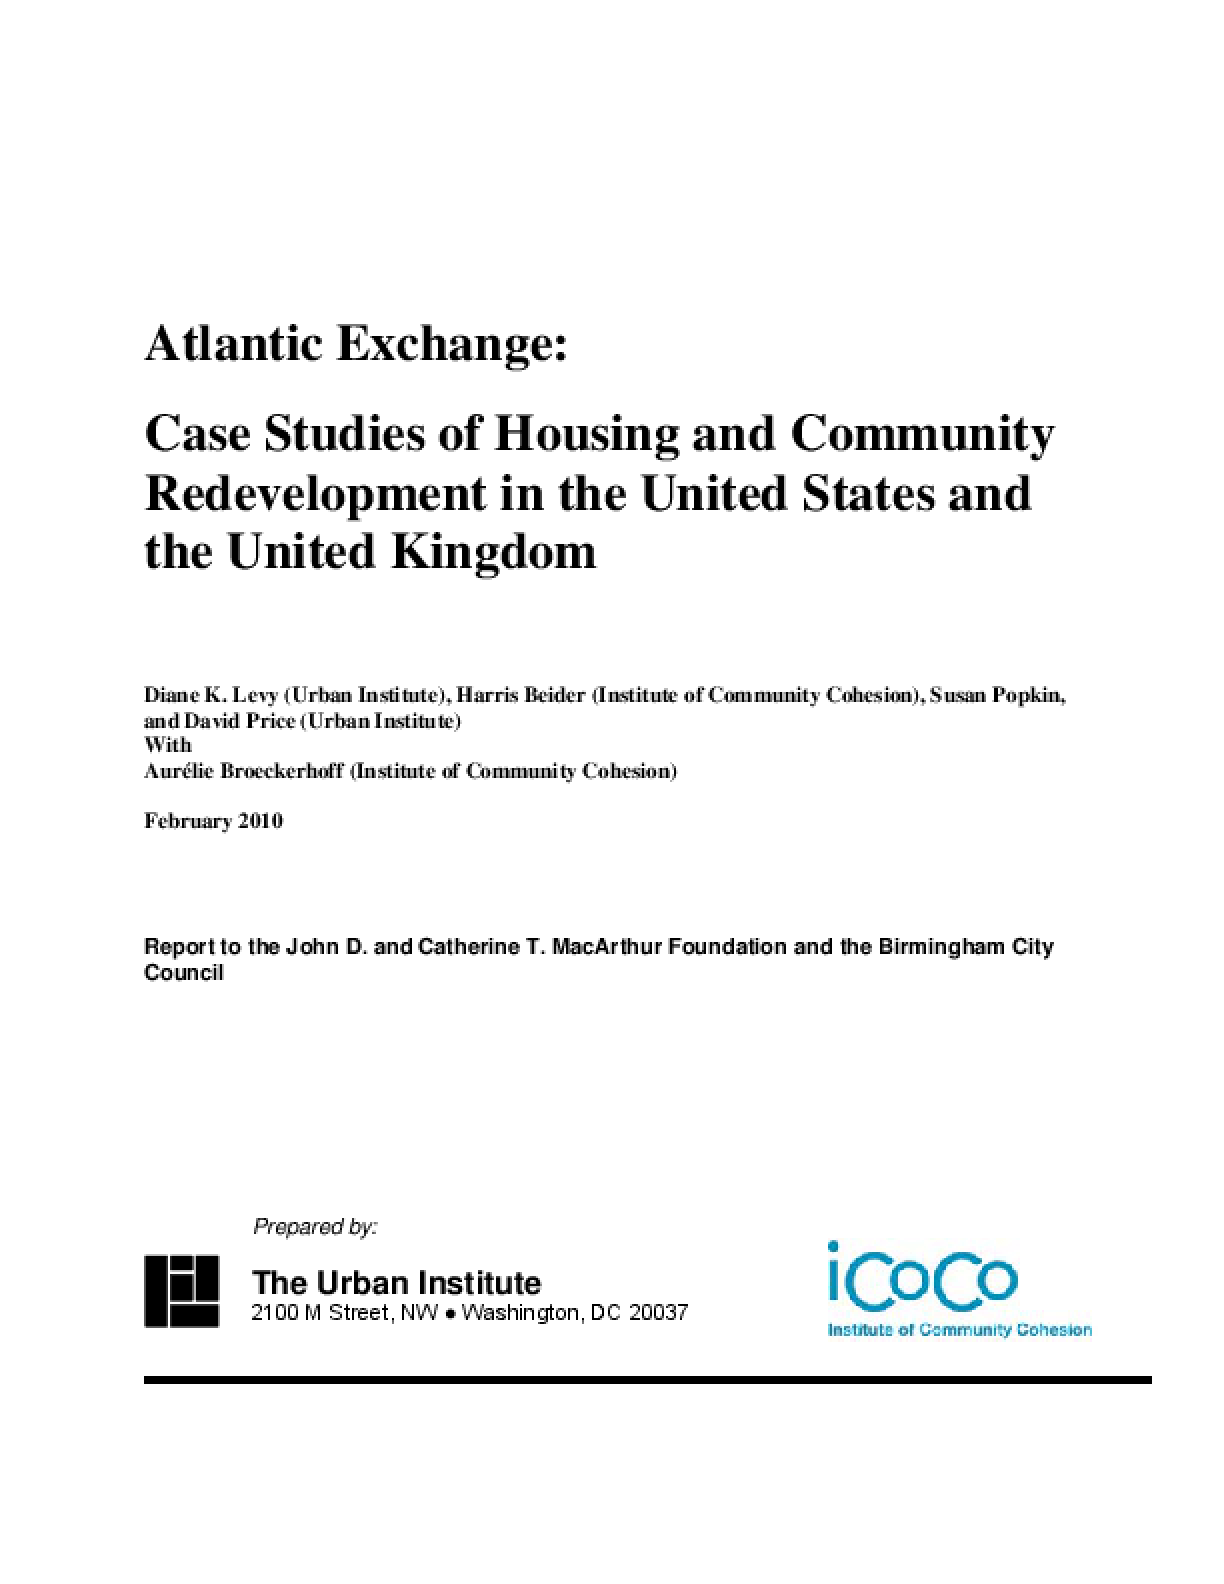 Atlantic Exchange: Case Studies of Housing and Community Redevelopment in the United States and the United Kingdom